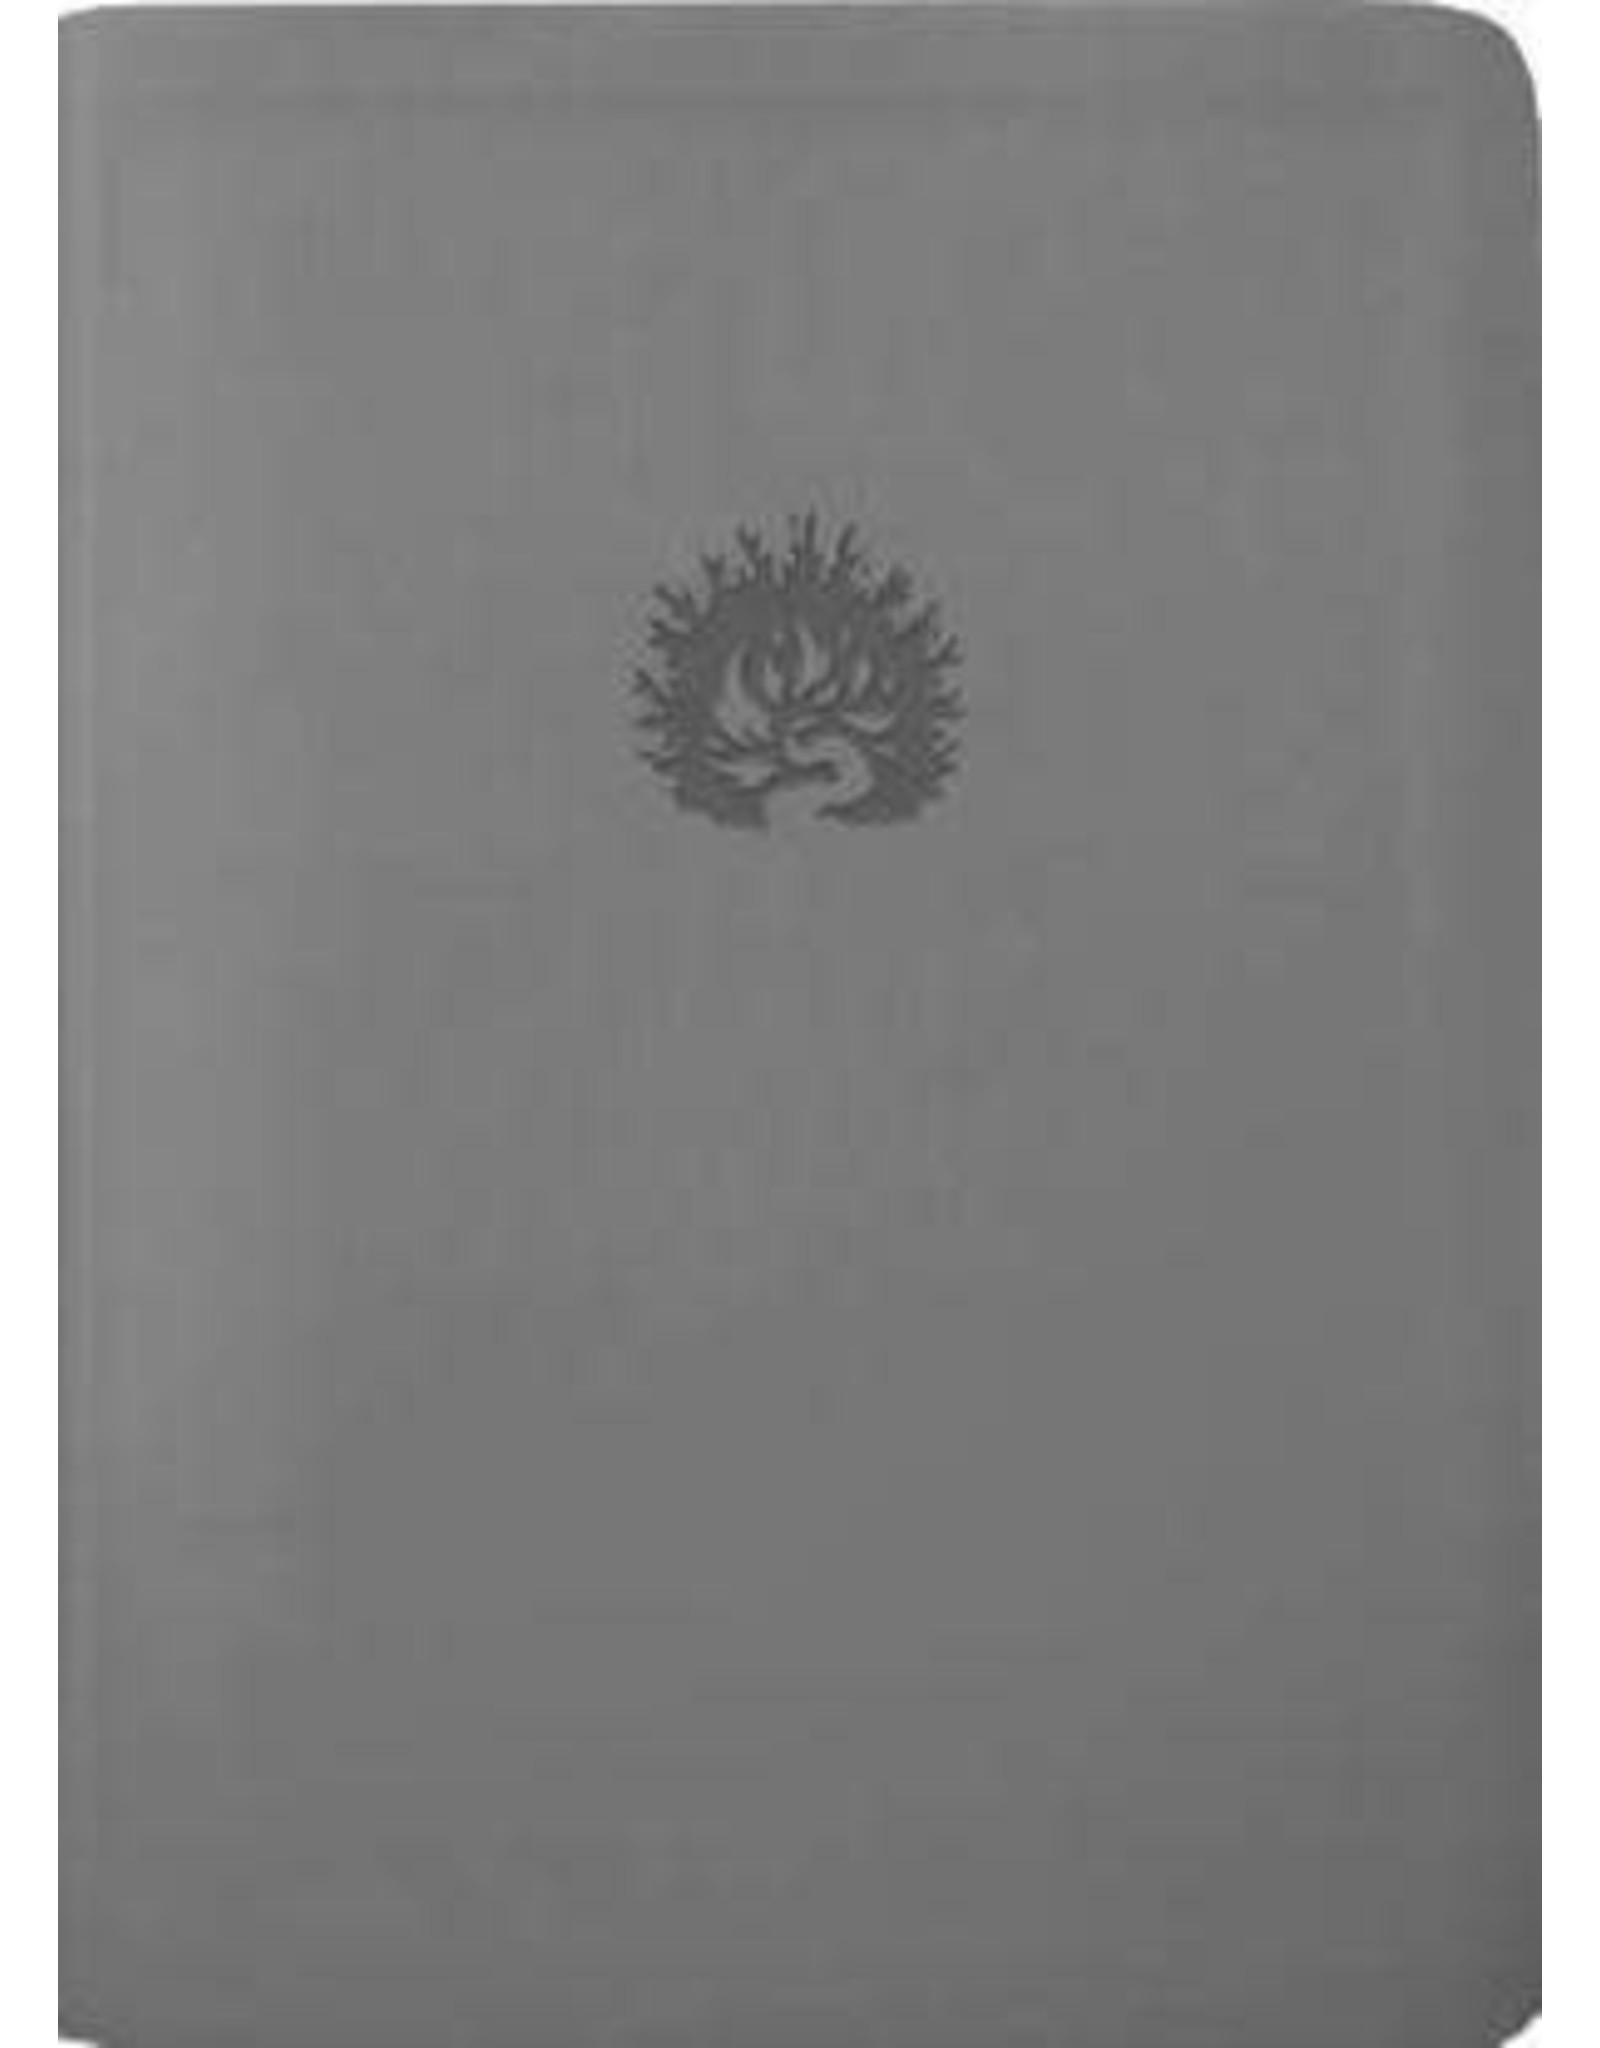 ESV The Reformation Study Bible Light Gray Leather-Like